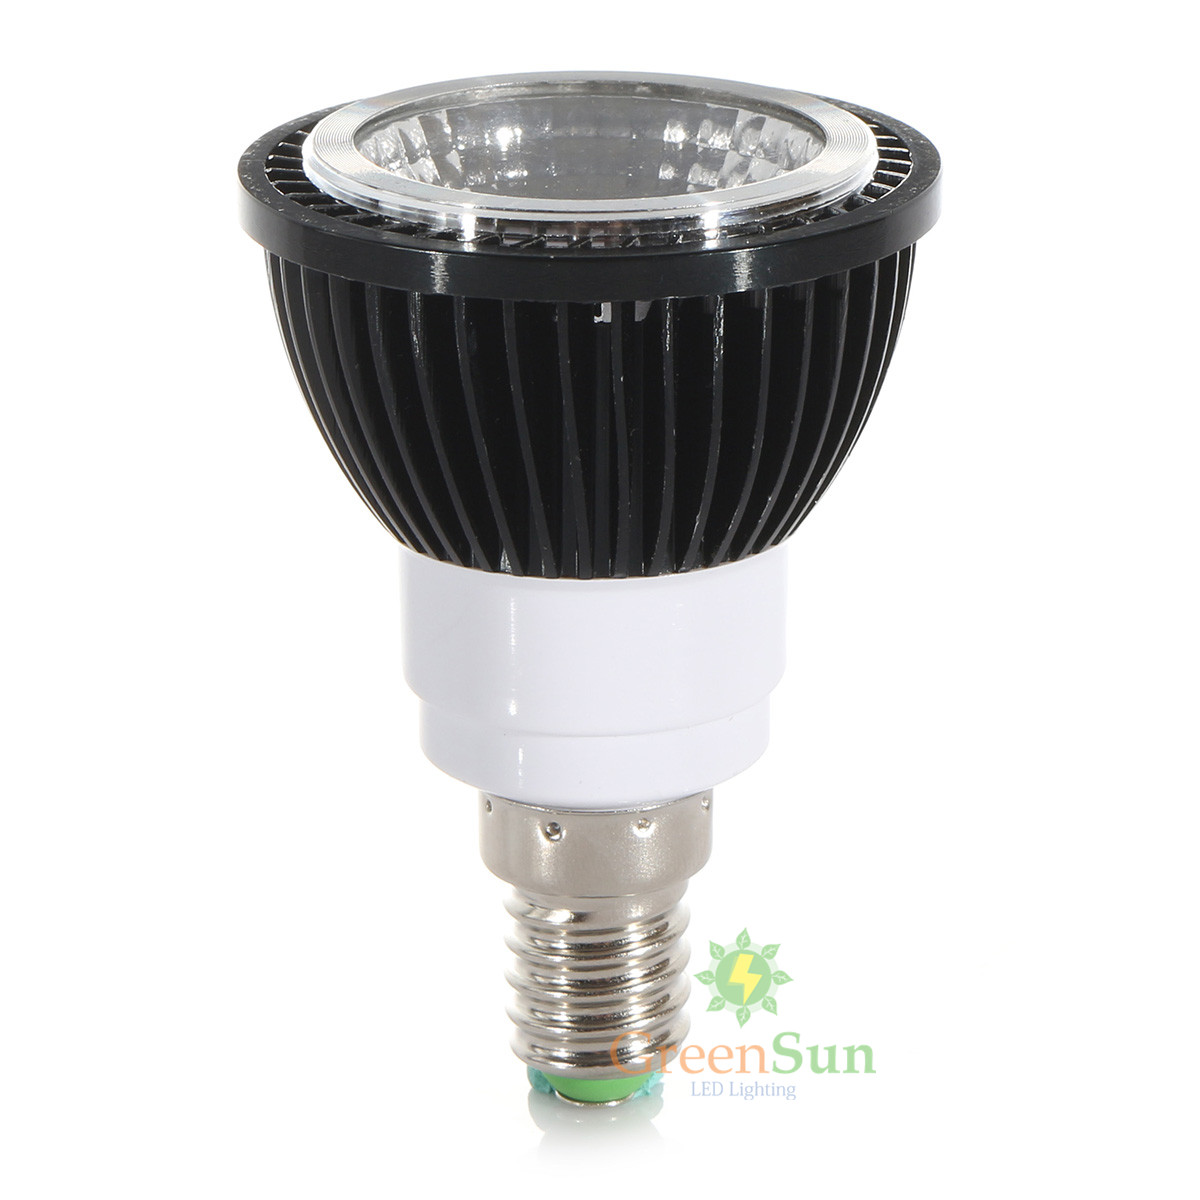 ultra bright gu10 e14 e27 6w 9w cob led spotlight spot light lamp xmas bulb 220v ebay. Black Bedroom Furniture Sets. Home Design Ideas